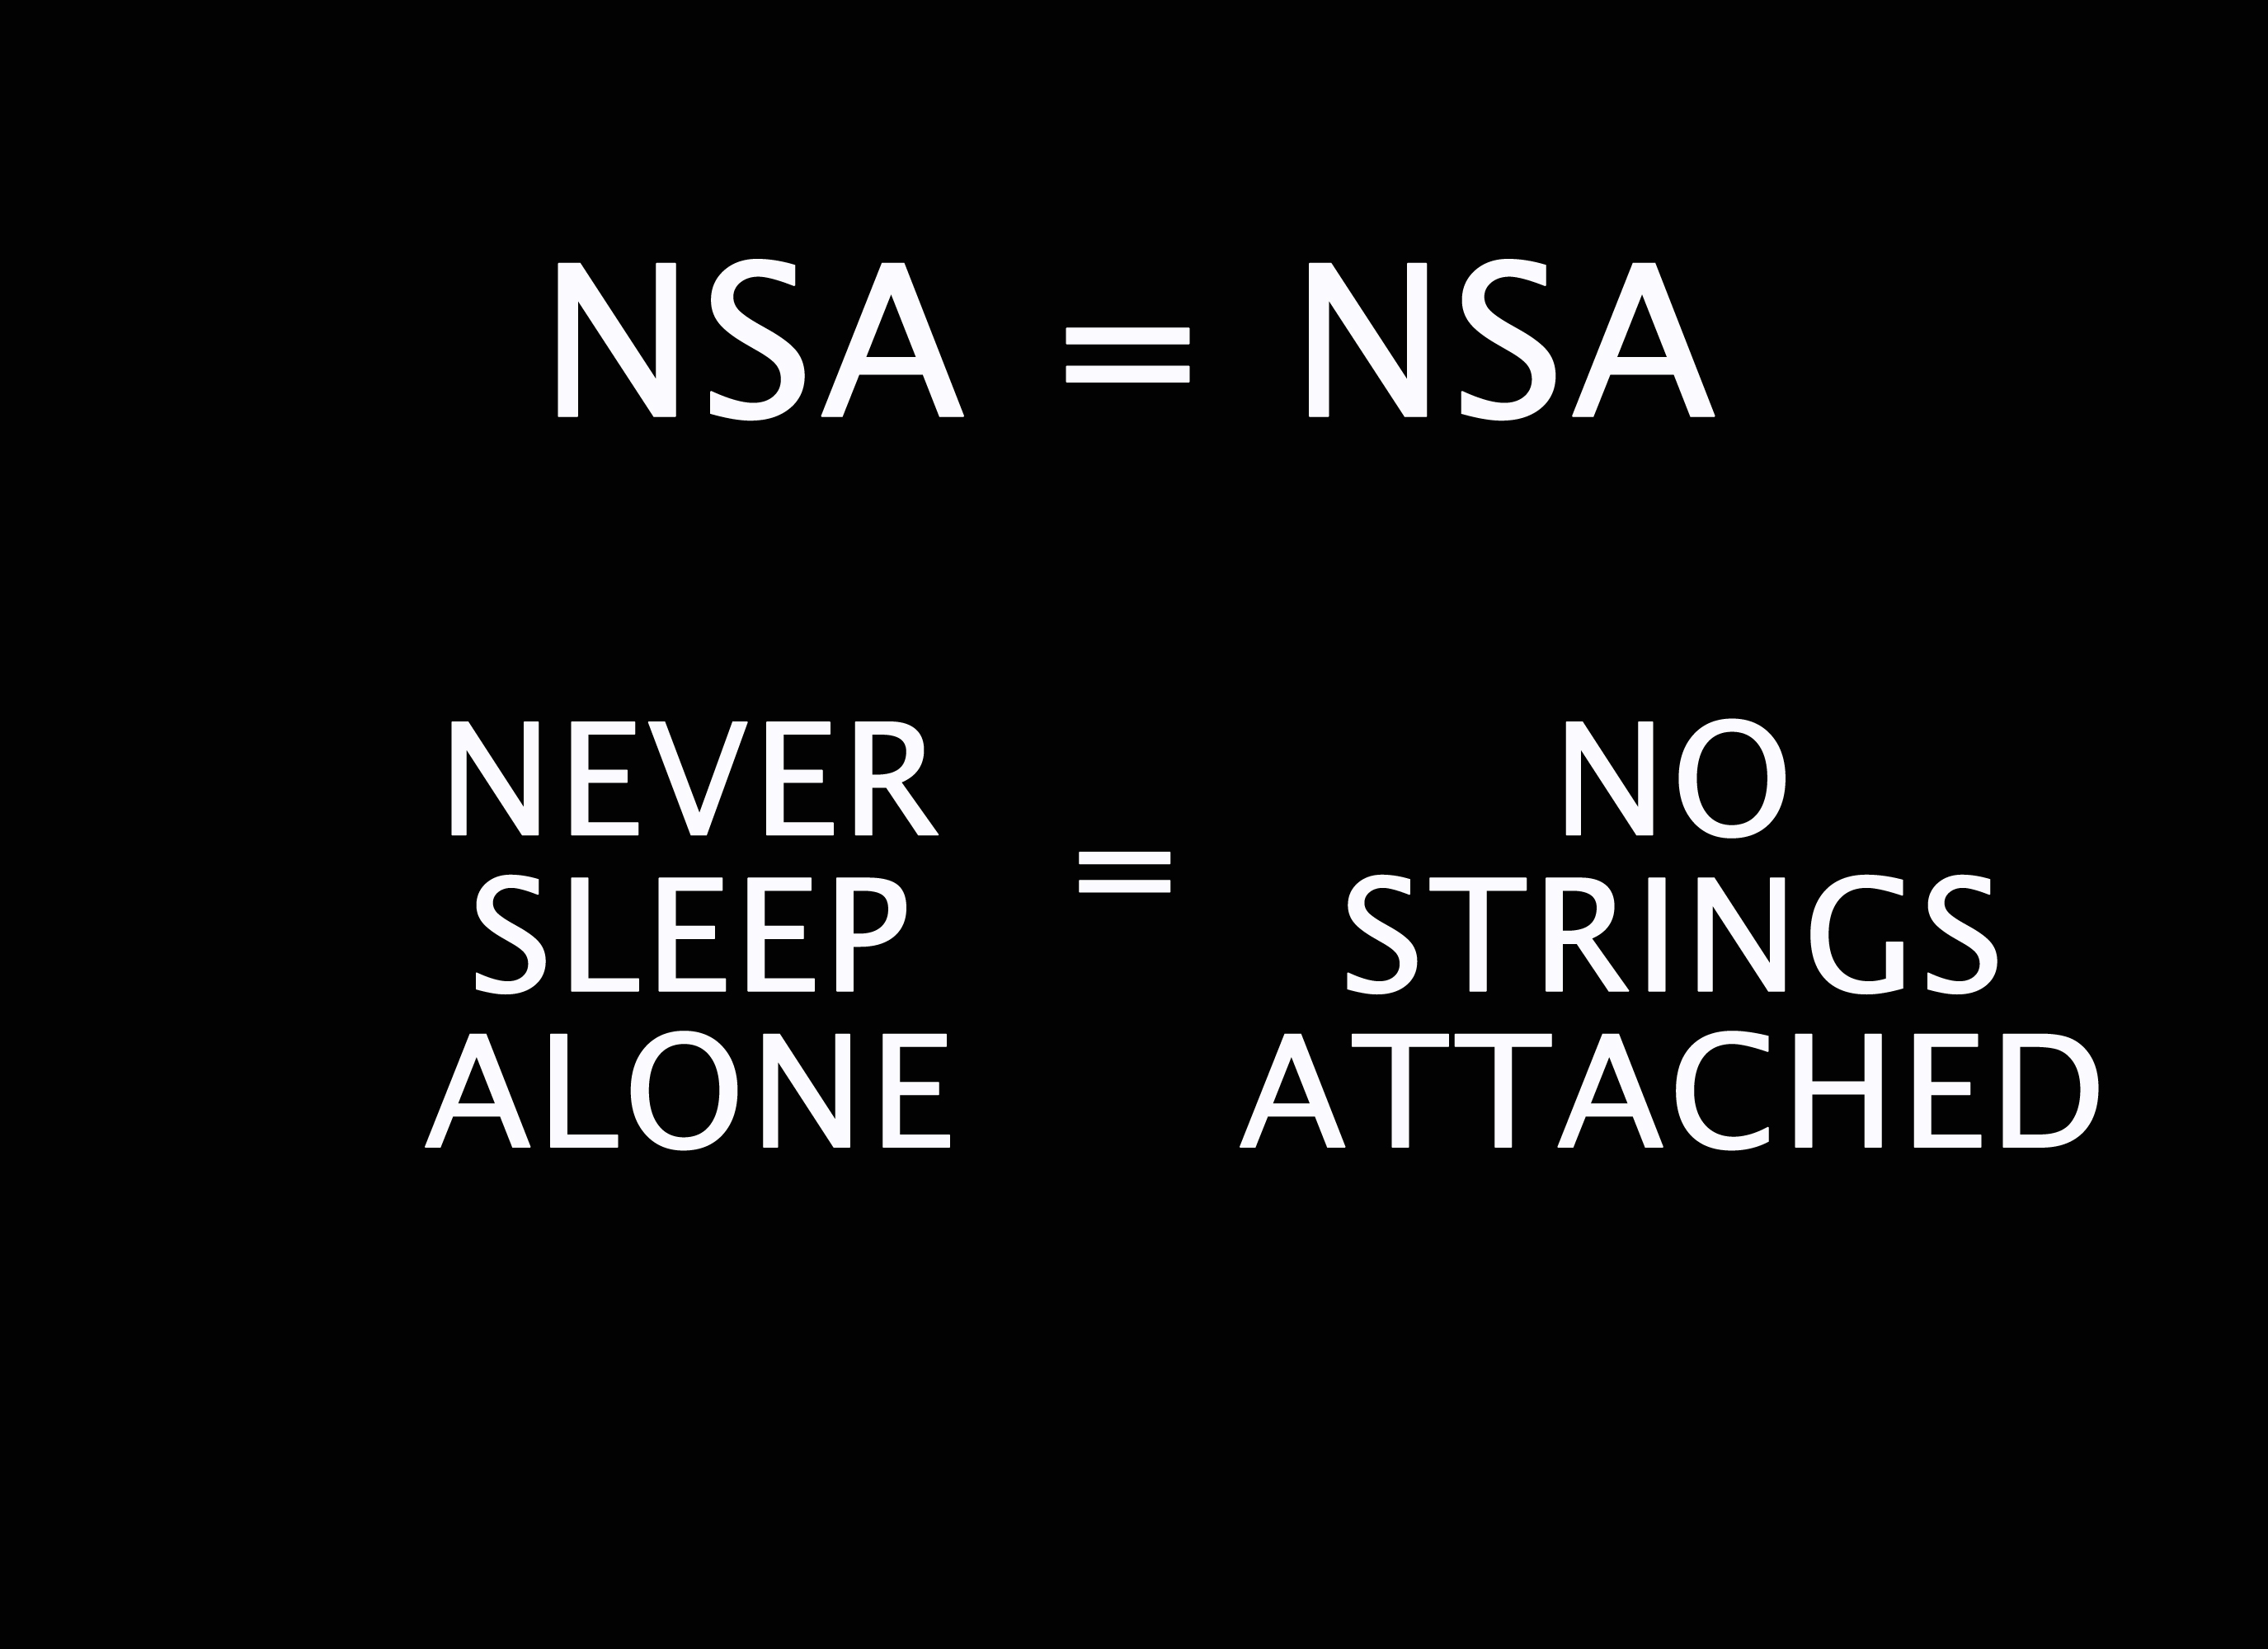 no strings attached local nsa Sydney